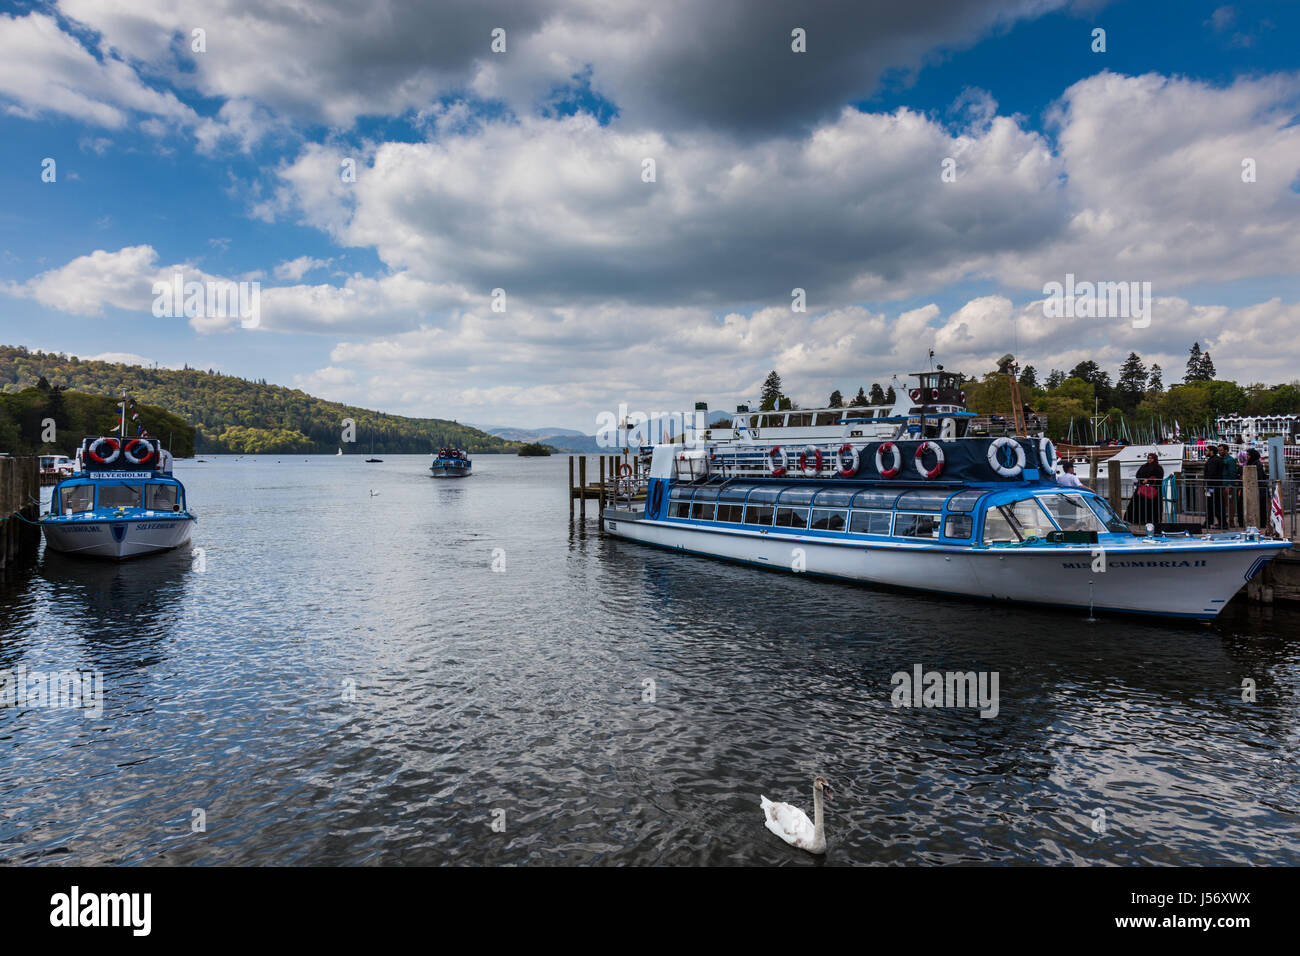 Tourist boat on Windermere arriving at Bowness, Lake District, Cumbria - Stock Image